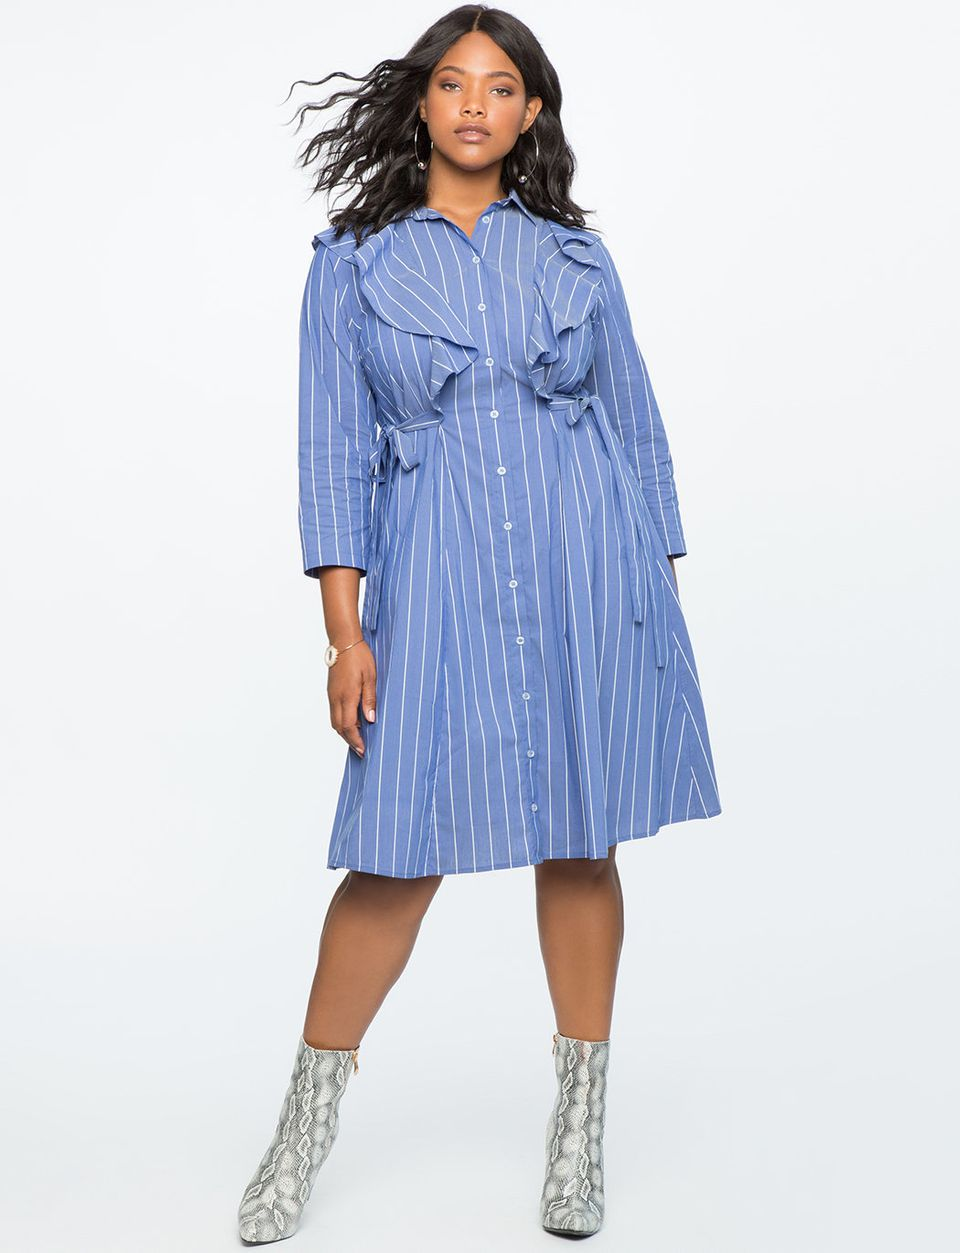 60c7437c153 28 Button Down Dresses And Skirts For Plus Size That Won t Gape ...